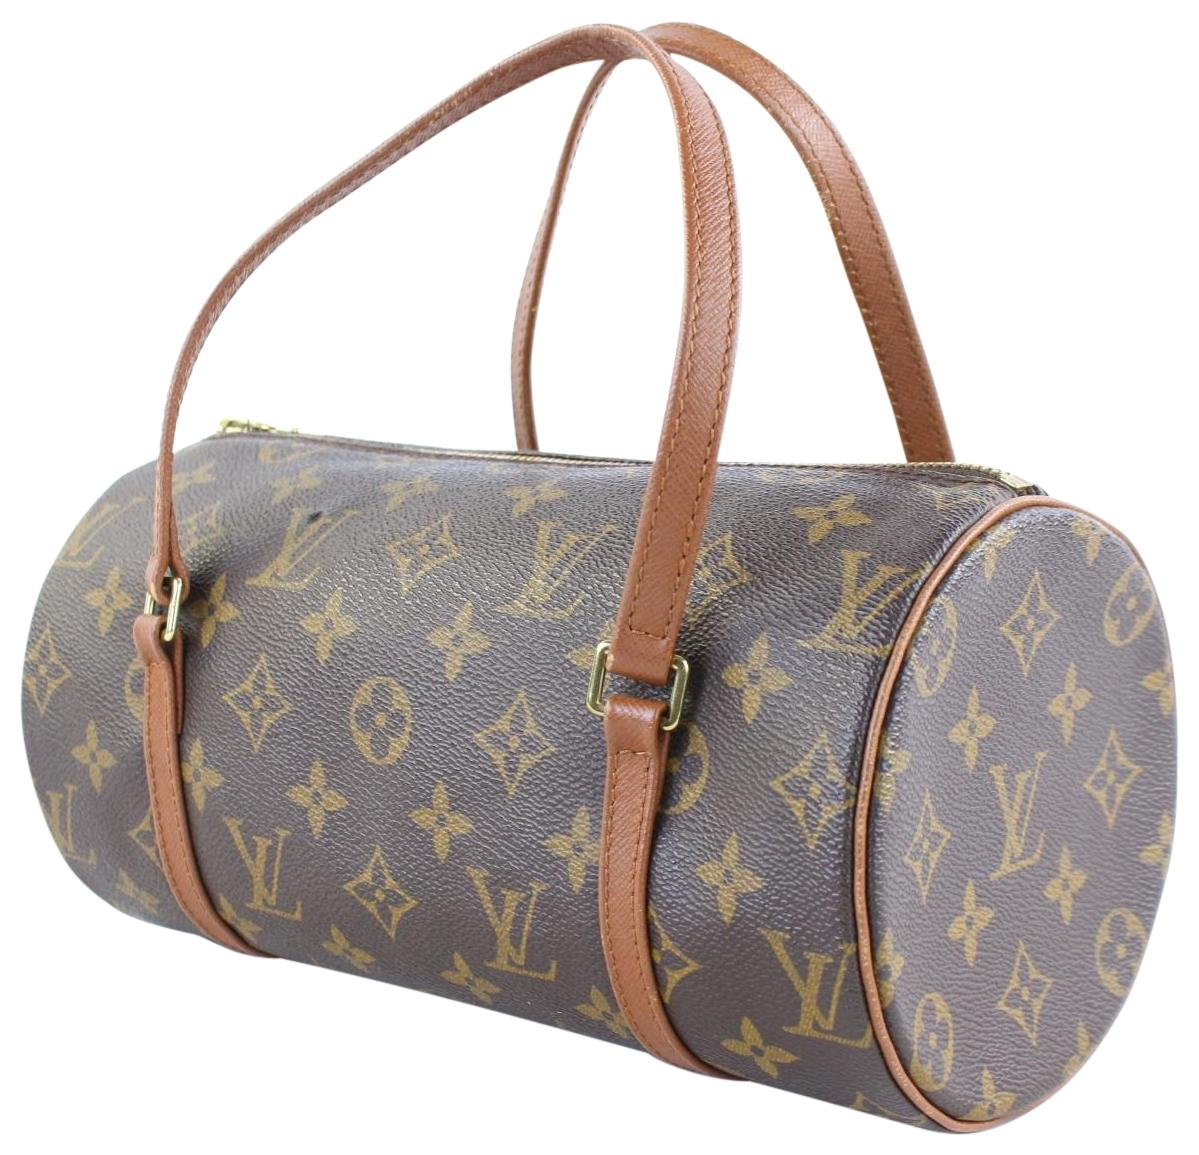 louis vuitton used bags. louis vuitton barrel soufflot papilon bedford shoulder bag louis vuitton used bags